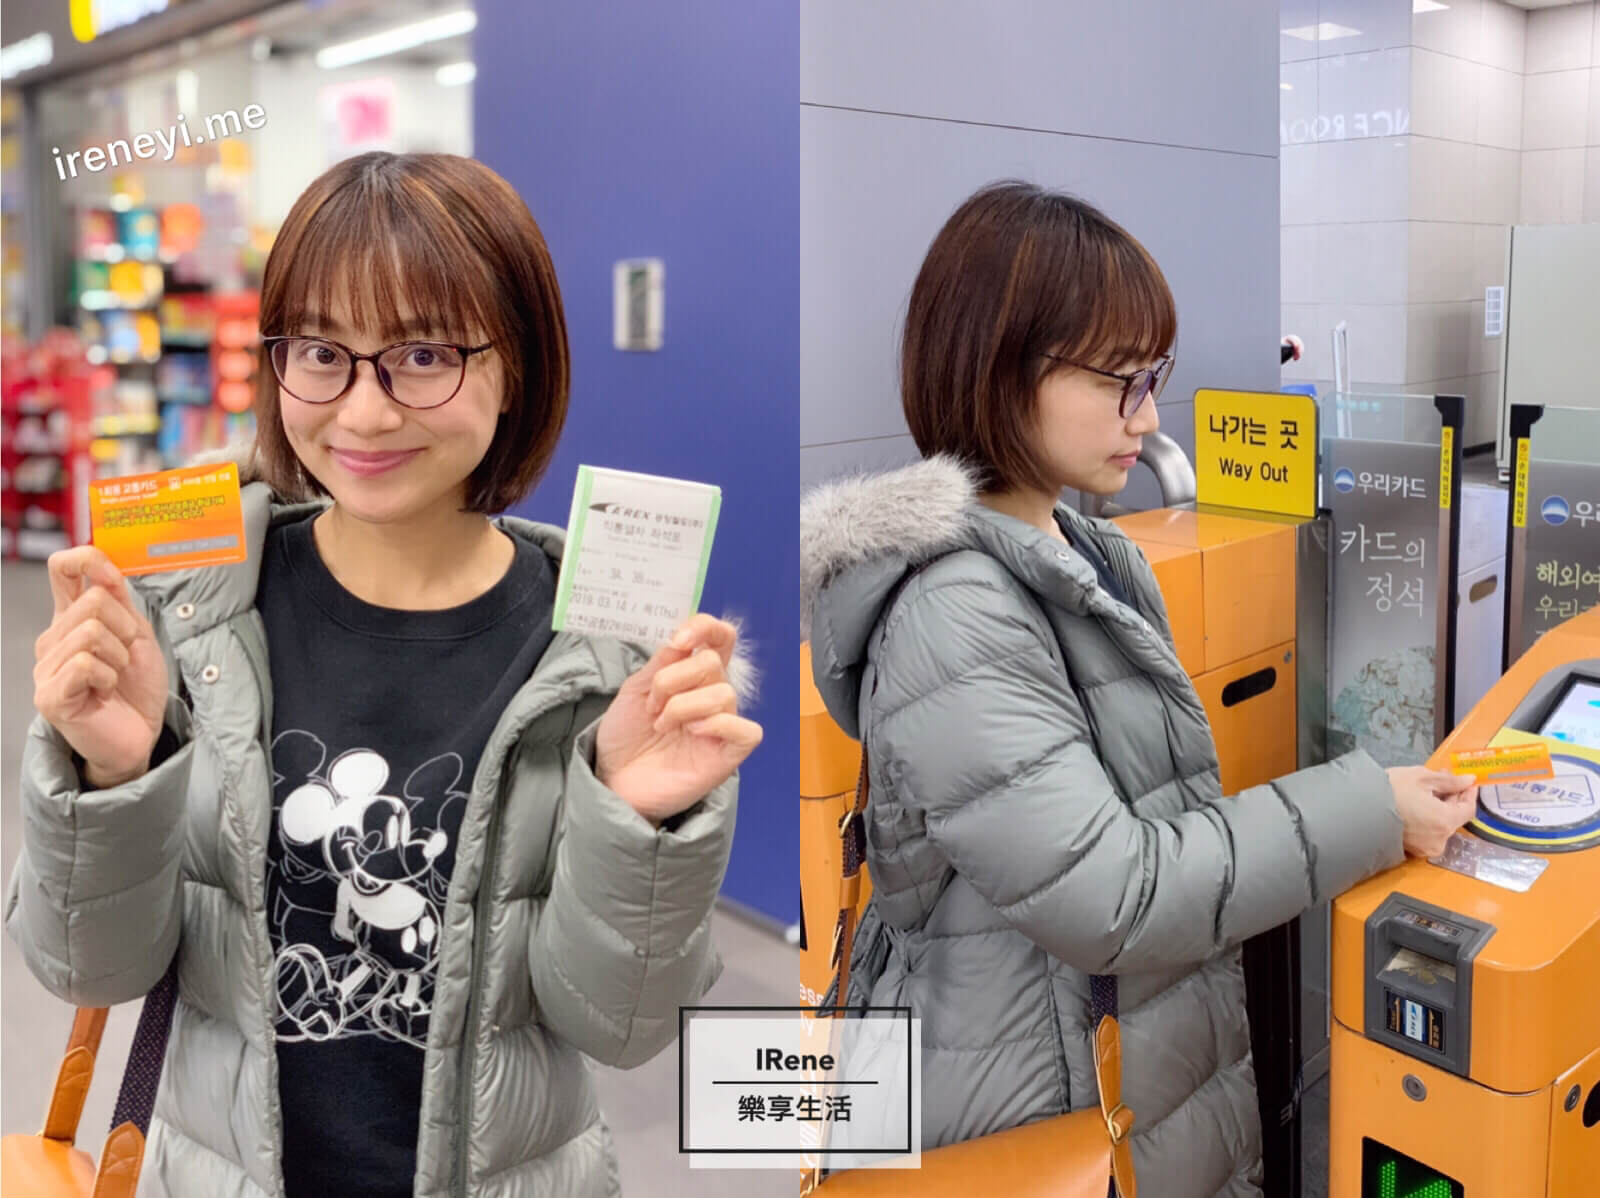 購買直達首爾機場快線車票, Purchase Seoul Airport Express Ticket, 购买直达首尔机场快线车票